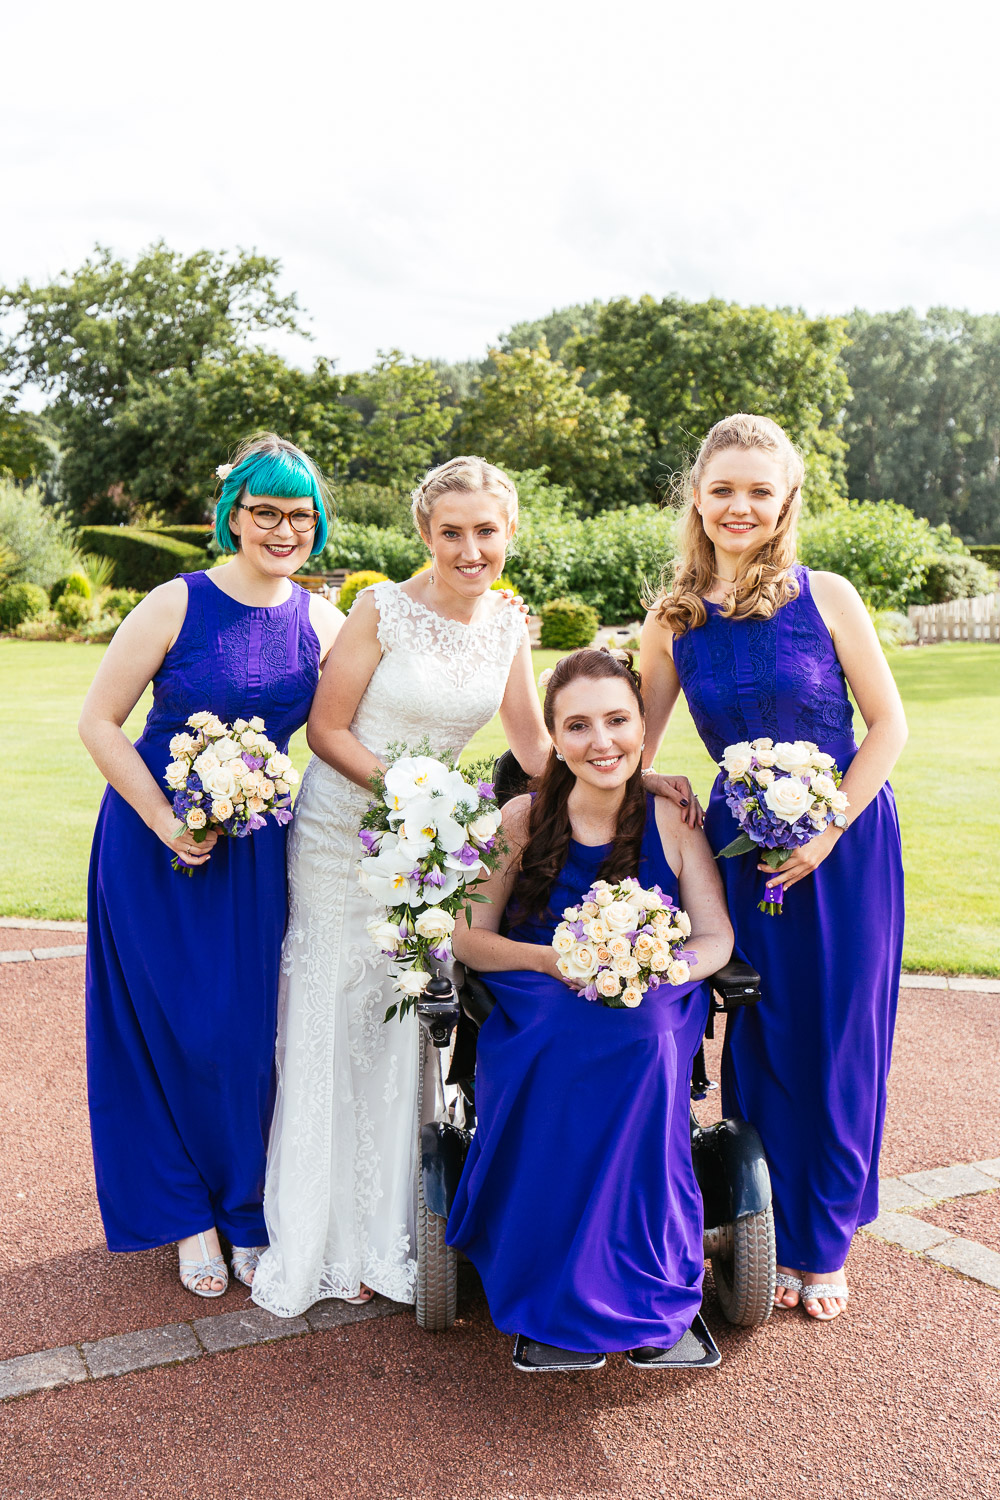 Siobhan-and-James-Wedding-Highlights-56.jpg